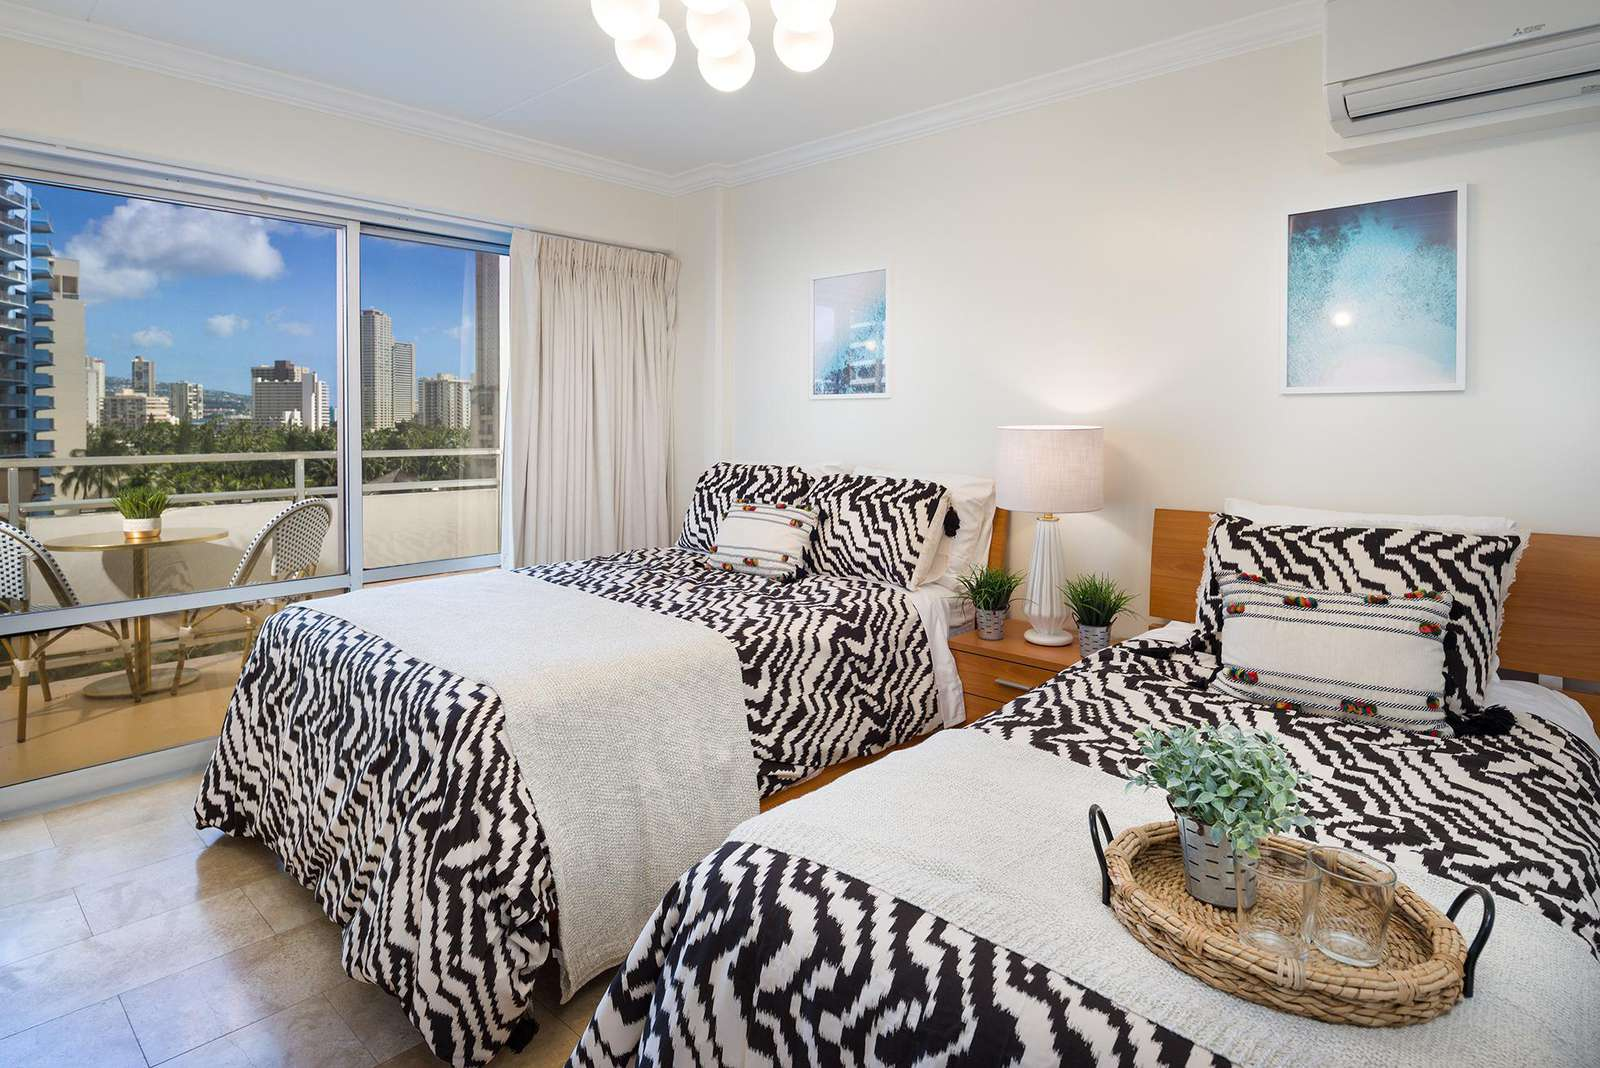 2nd Bedroom with 2 twin beds and lanai/balcony access